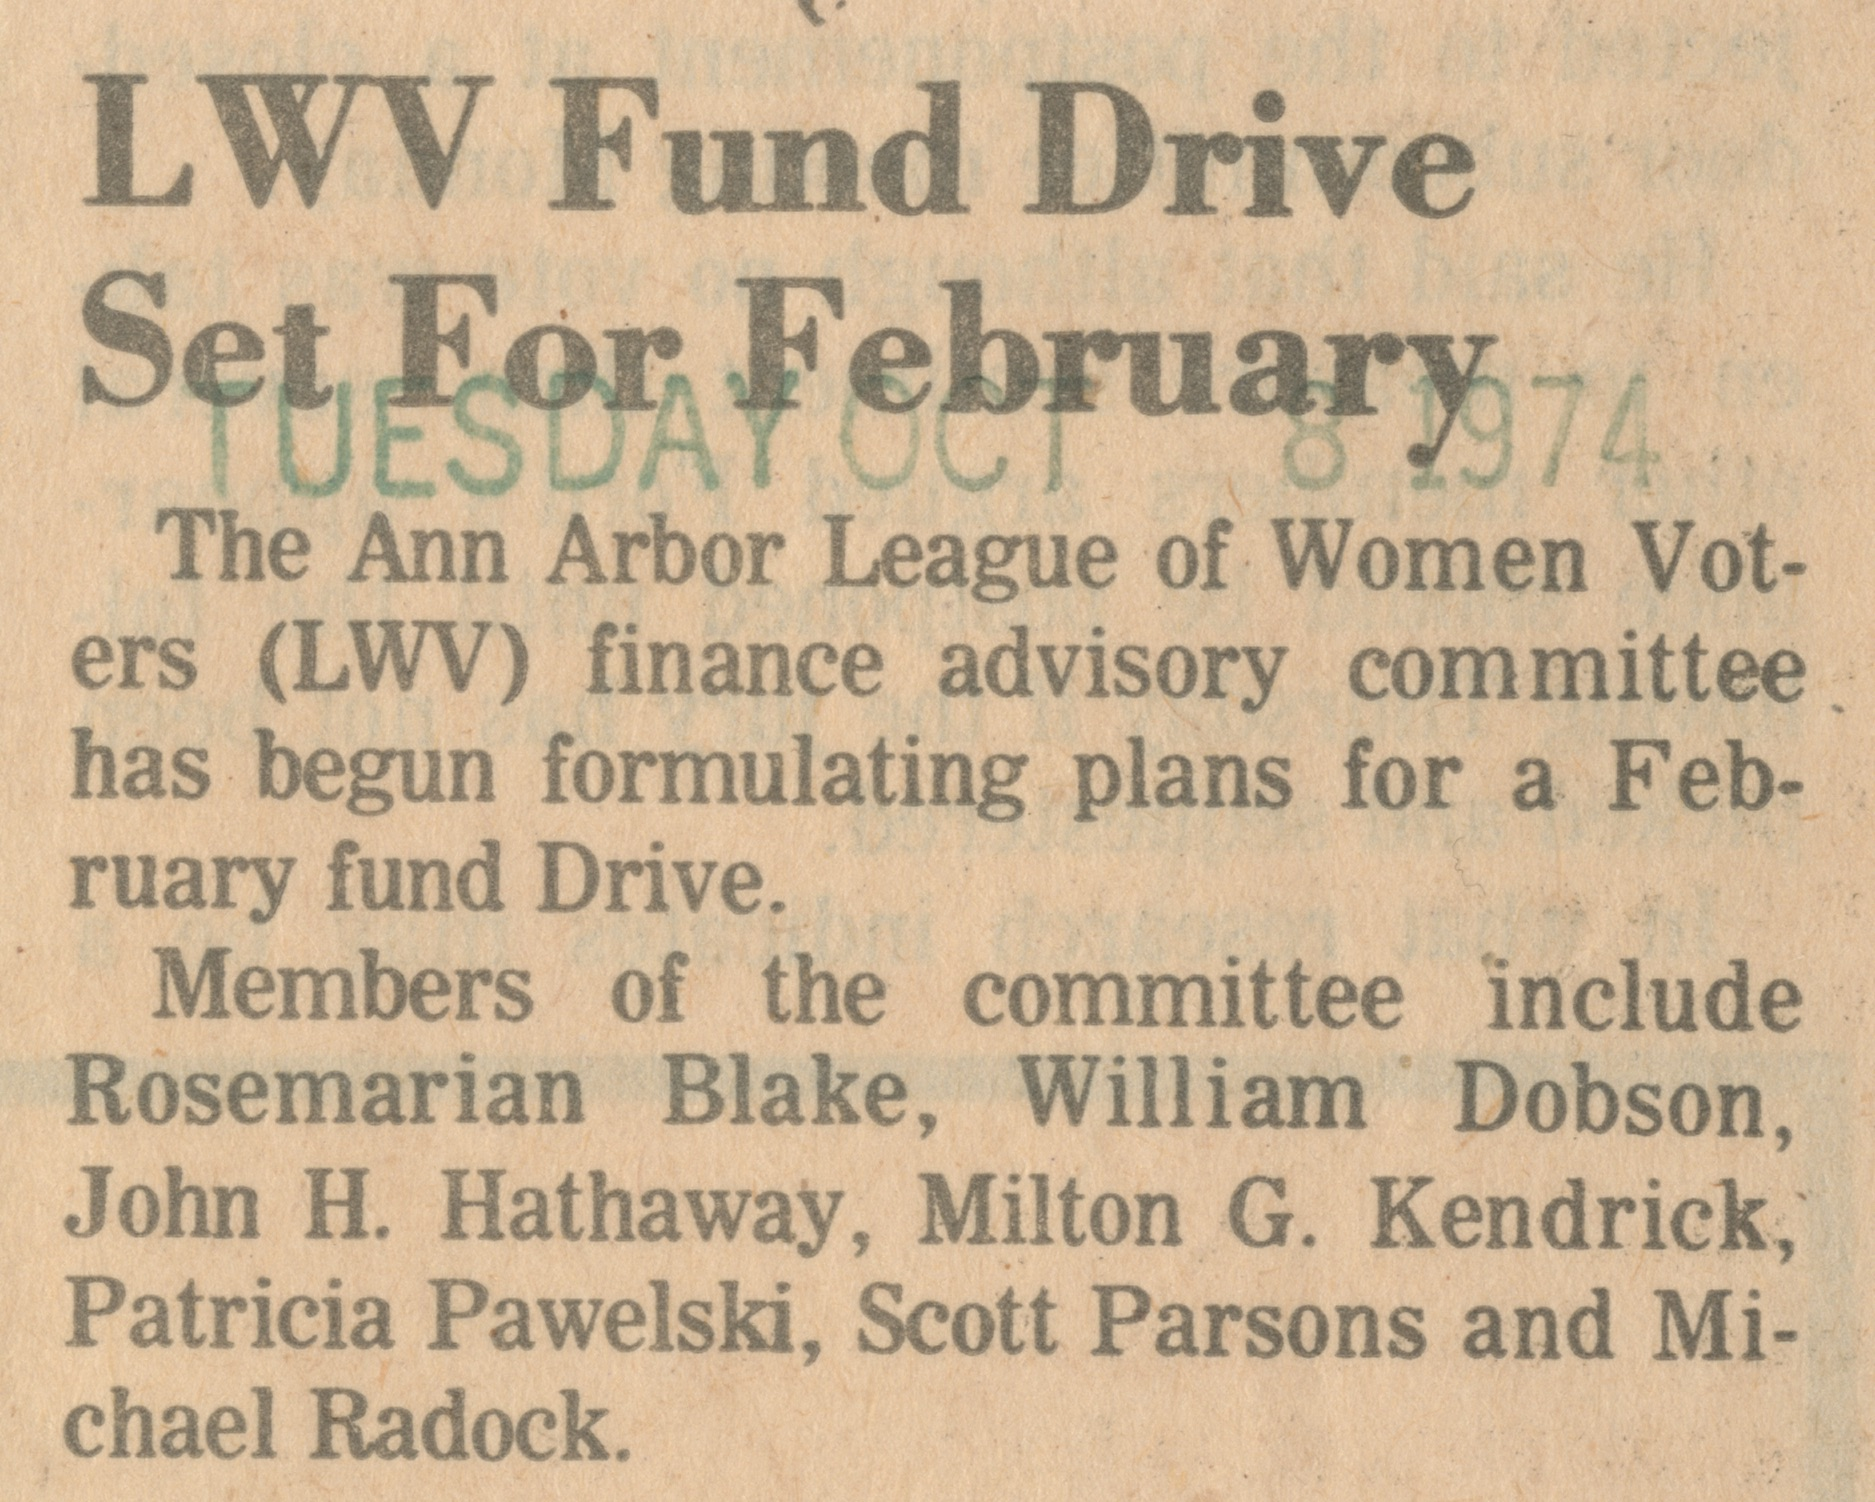 LWV Fund Drive Set For February image